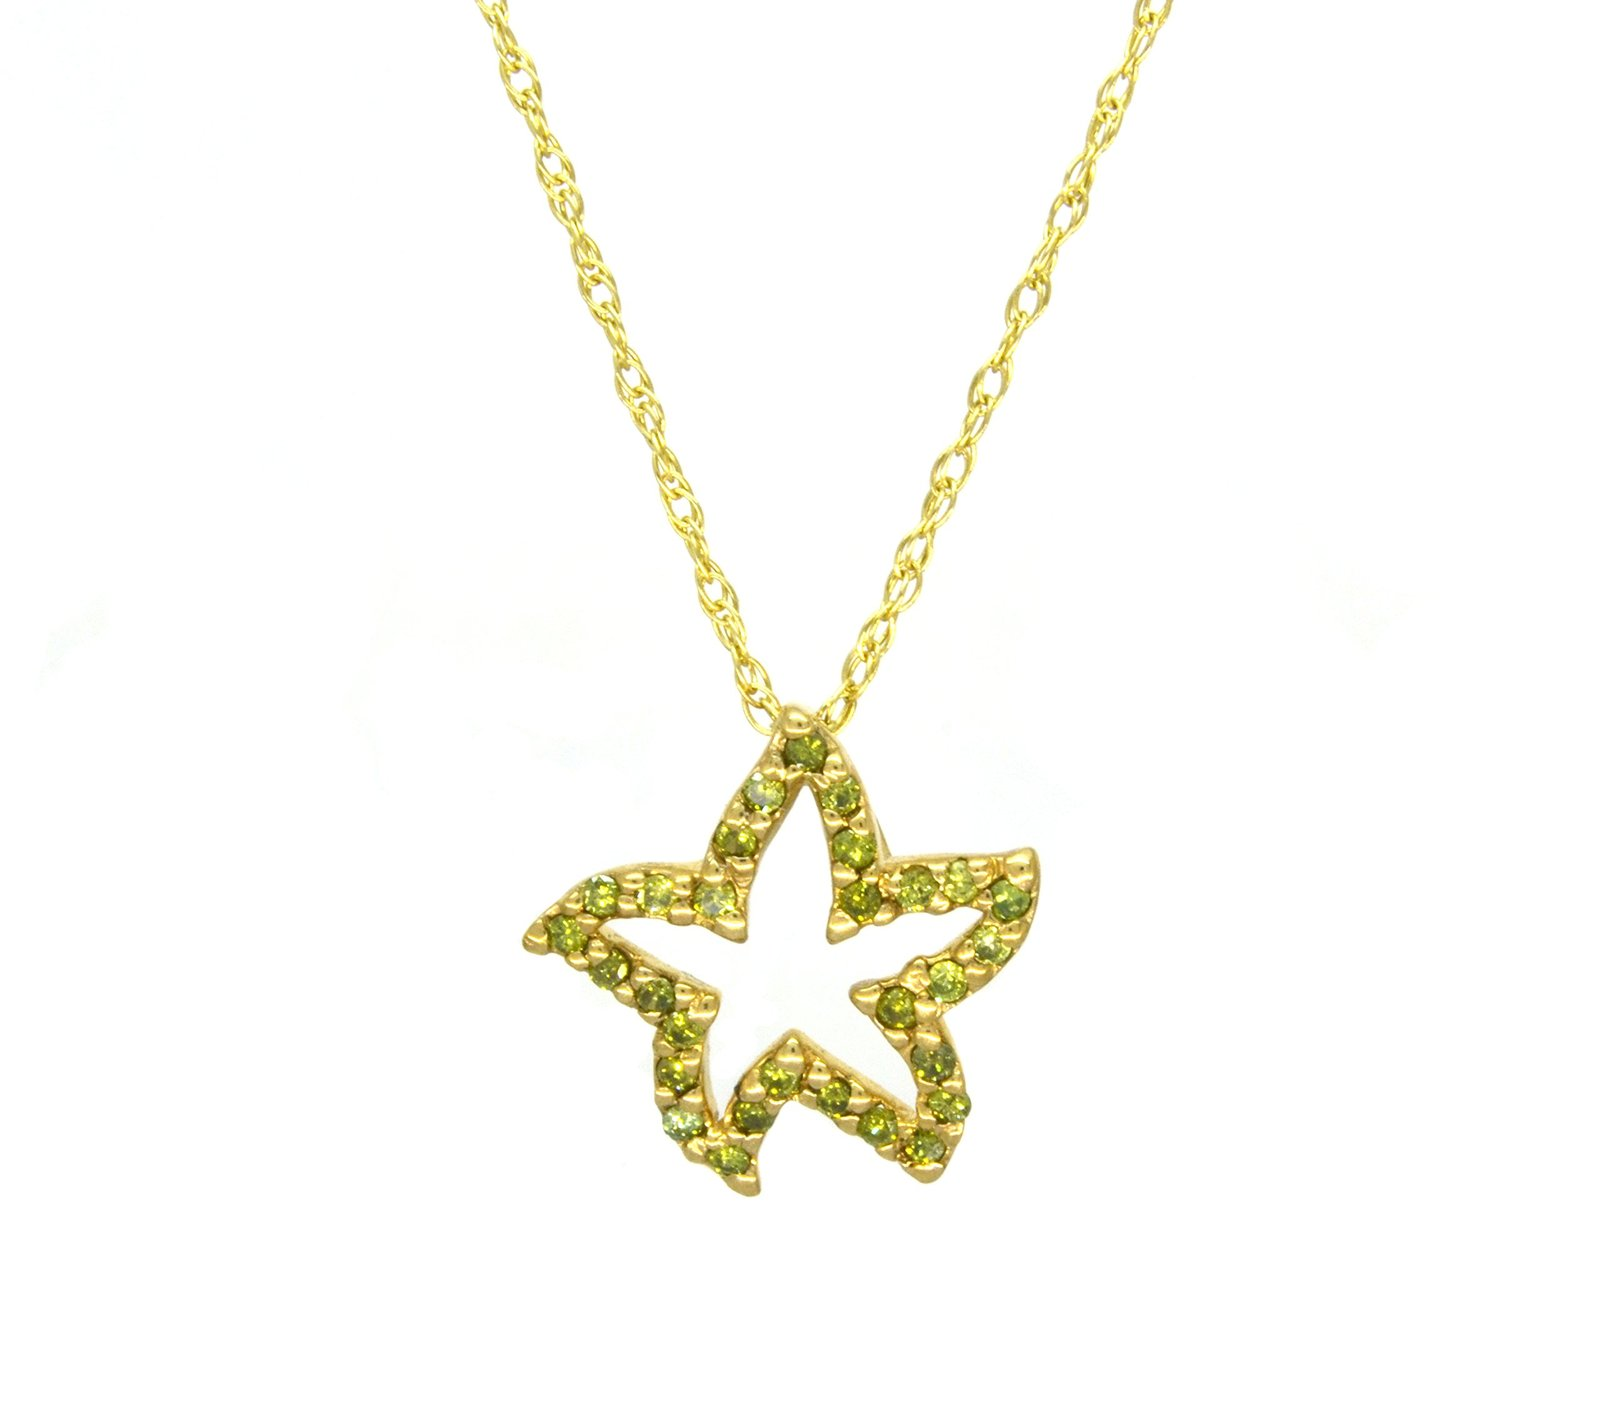 10 K Yellow Gold Genuine Peridot Starfish Pendant with Cable Chain